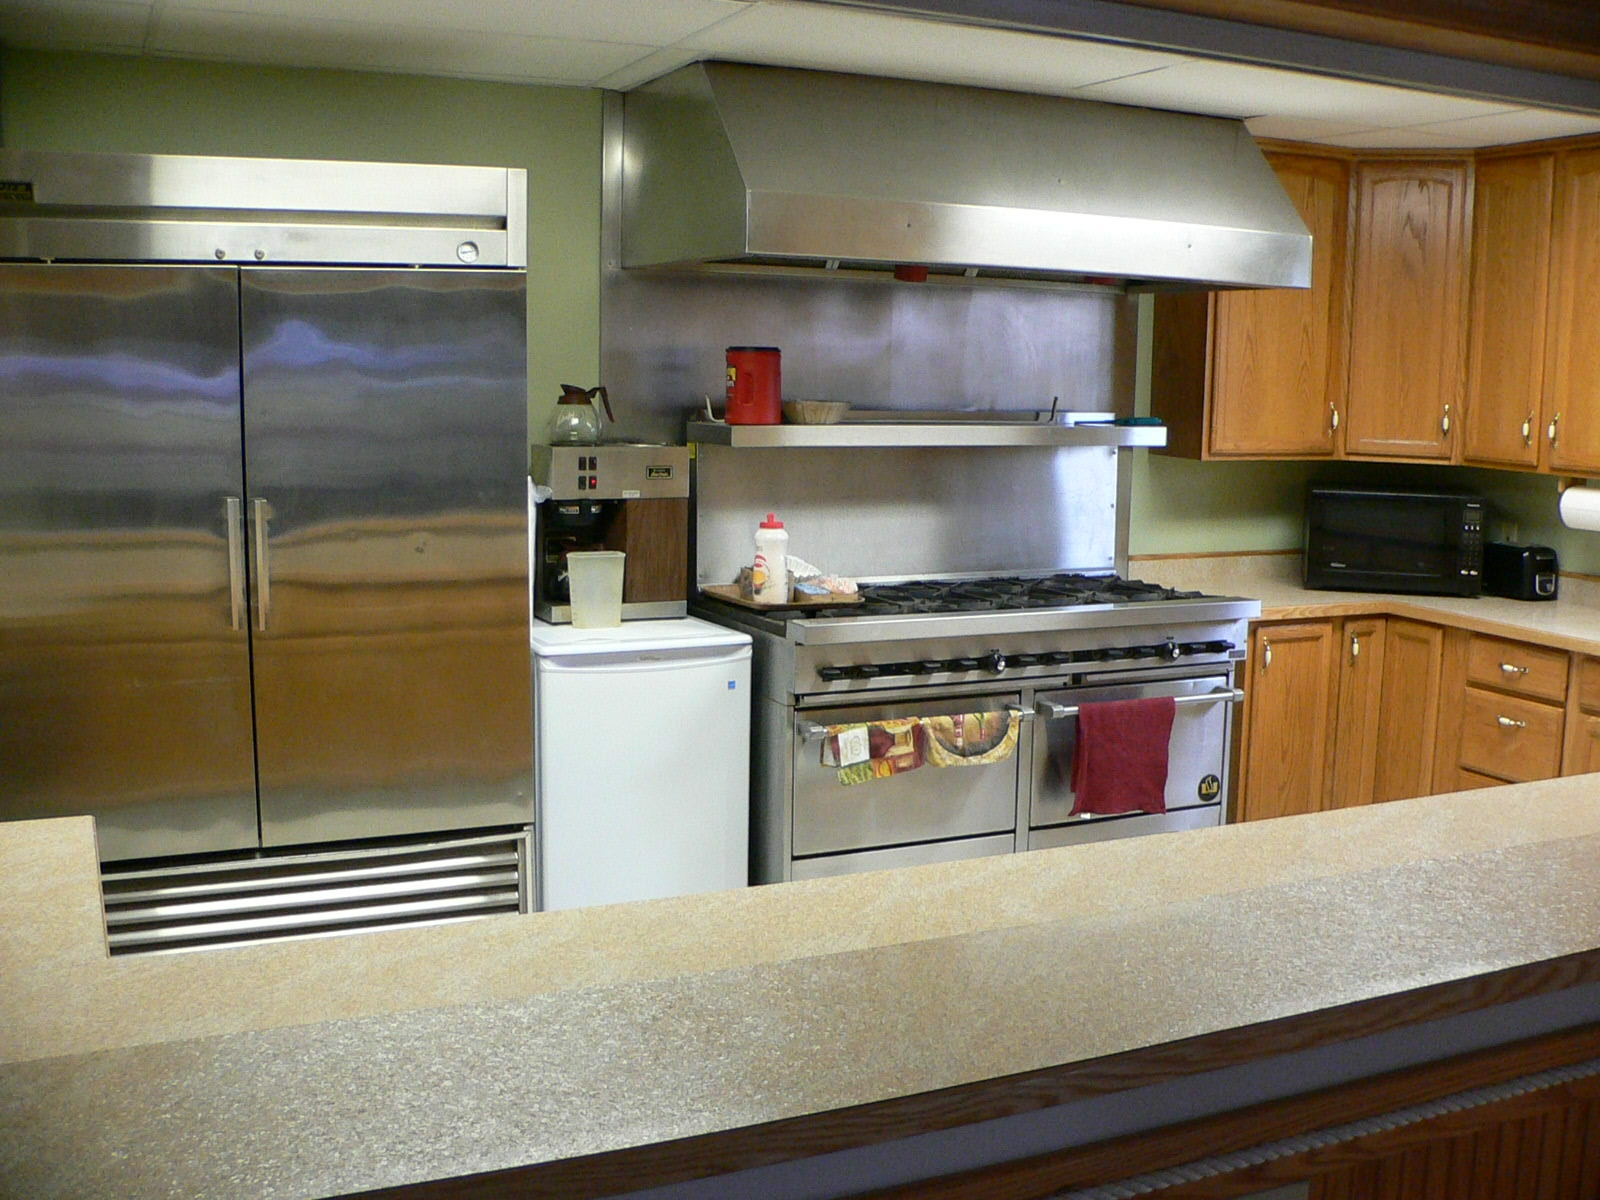 Uncategorized Commercial Kitchen Appliances For Home commercial appliances at home edgewood cabinetry view larger image